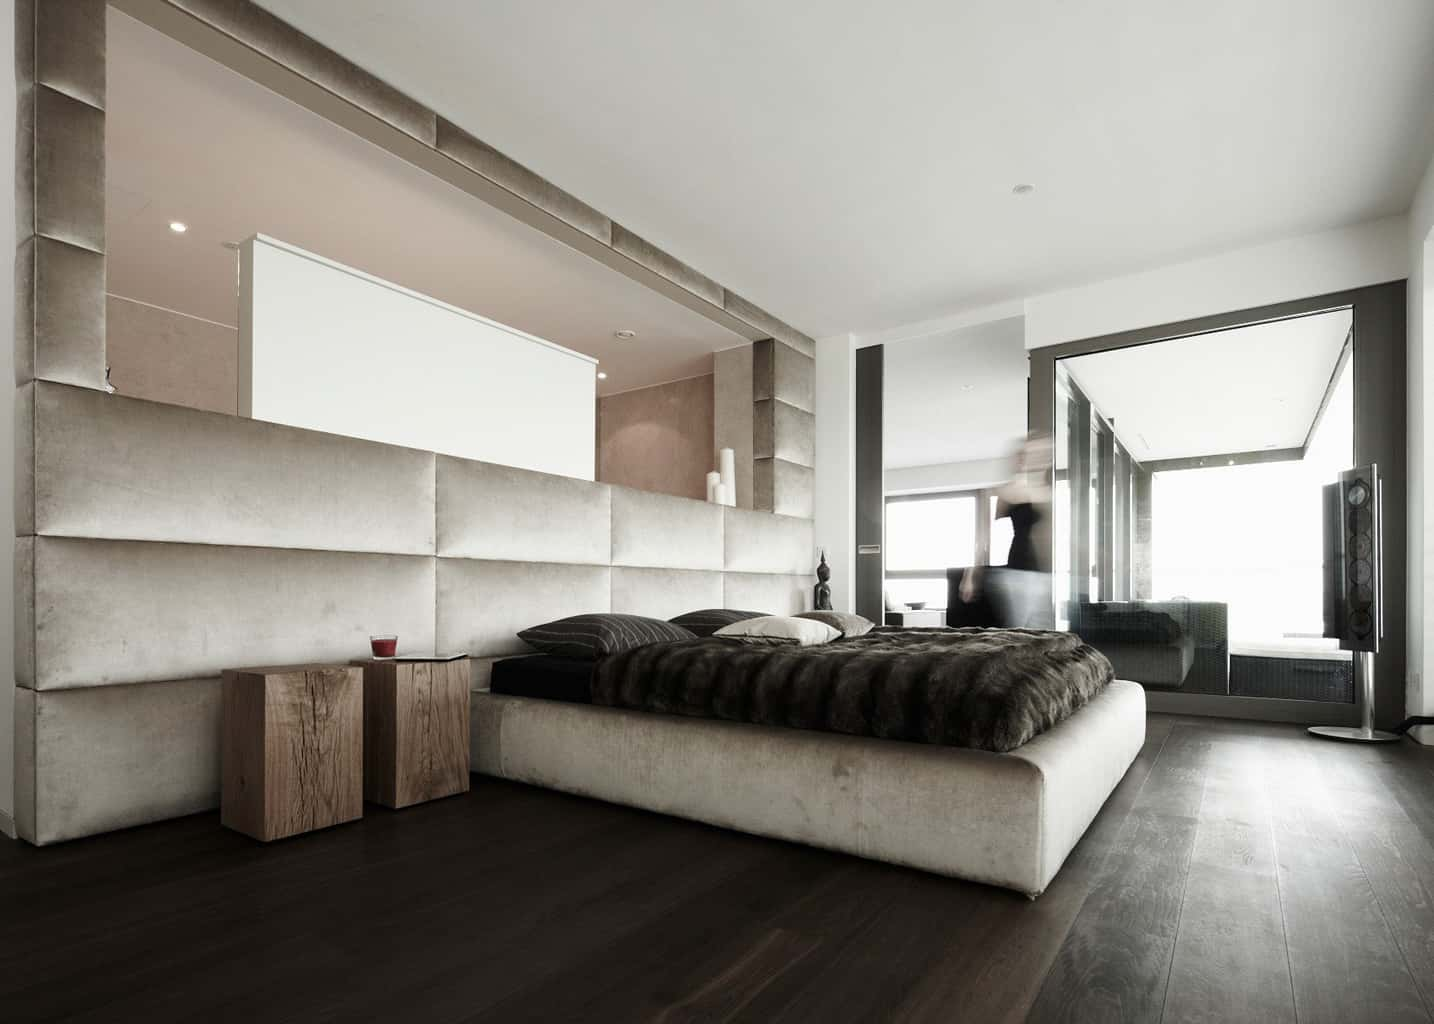 Living space elements